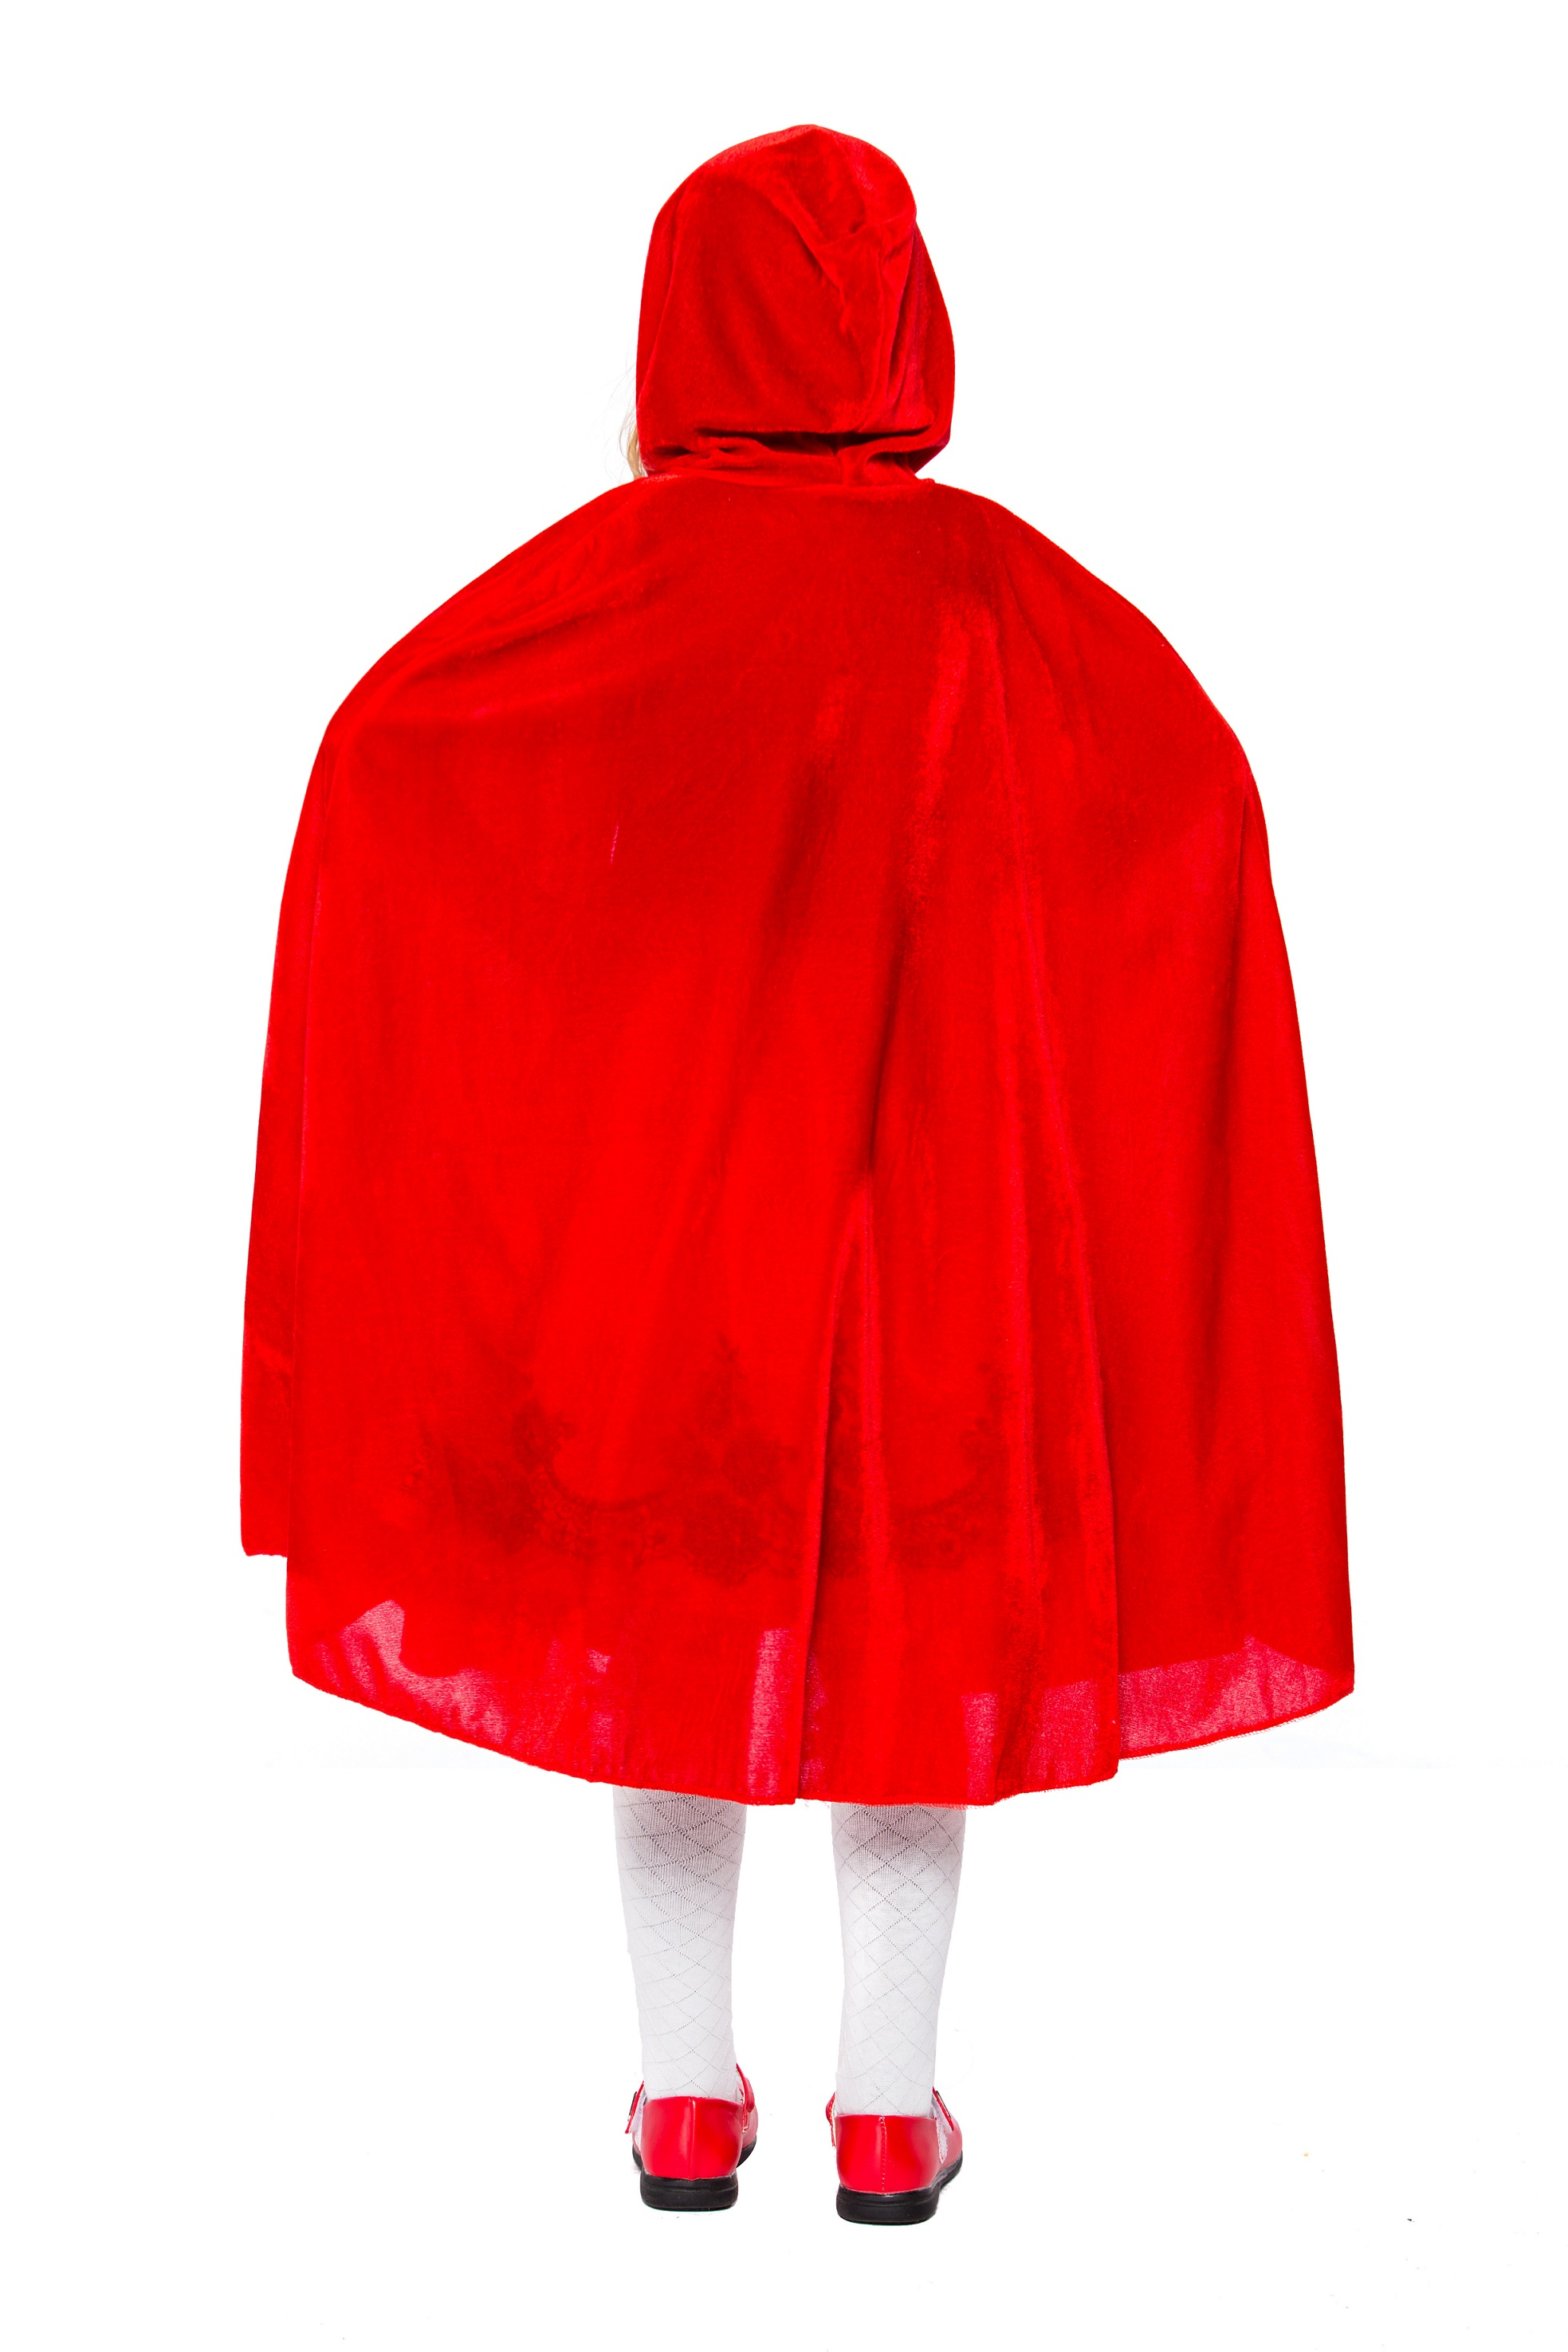 costume for children little red riding hood costume   halloween costume kids